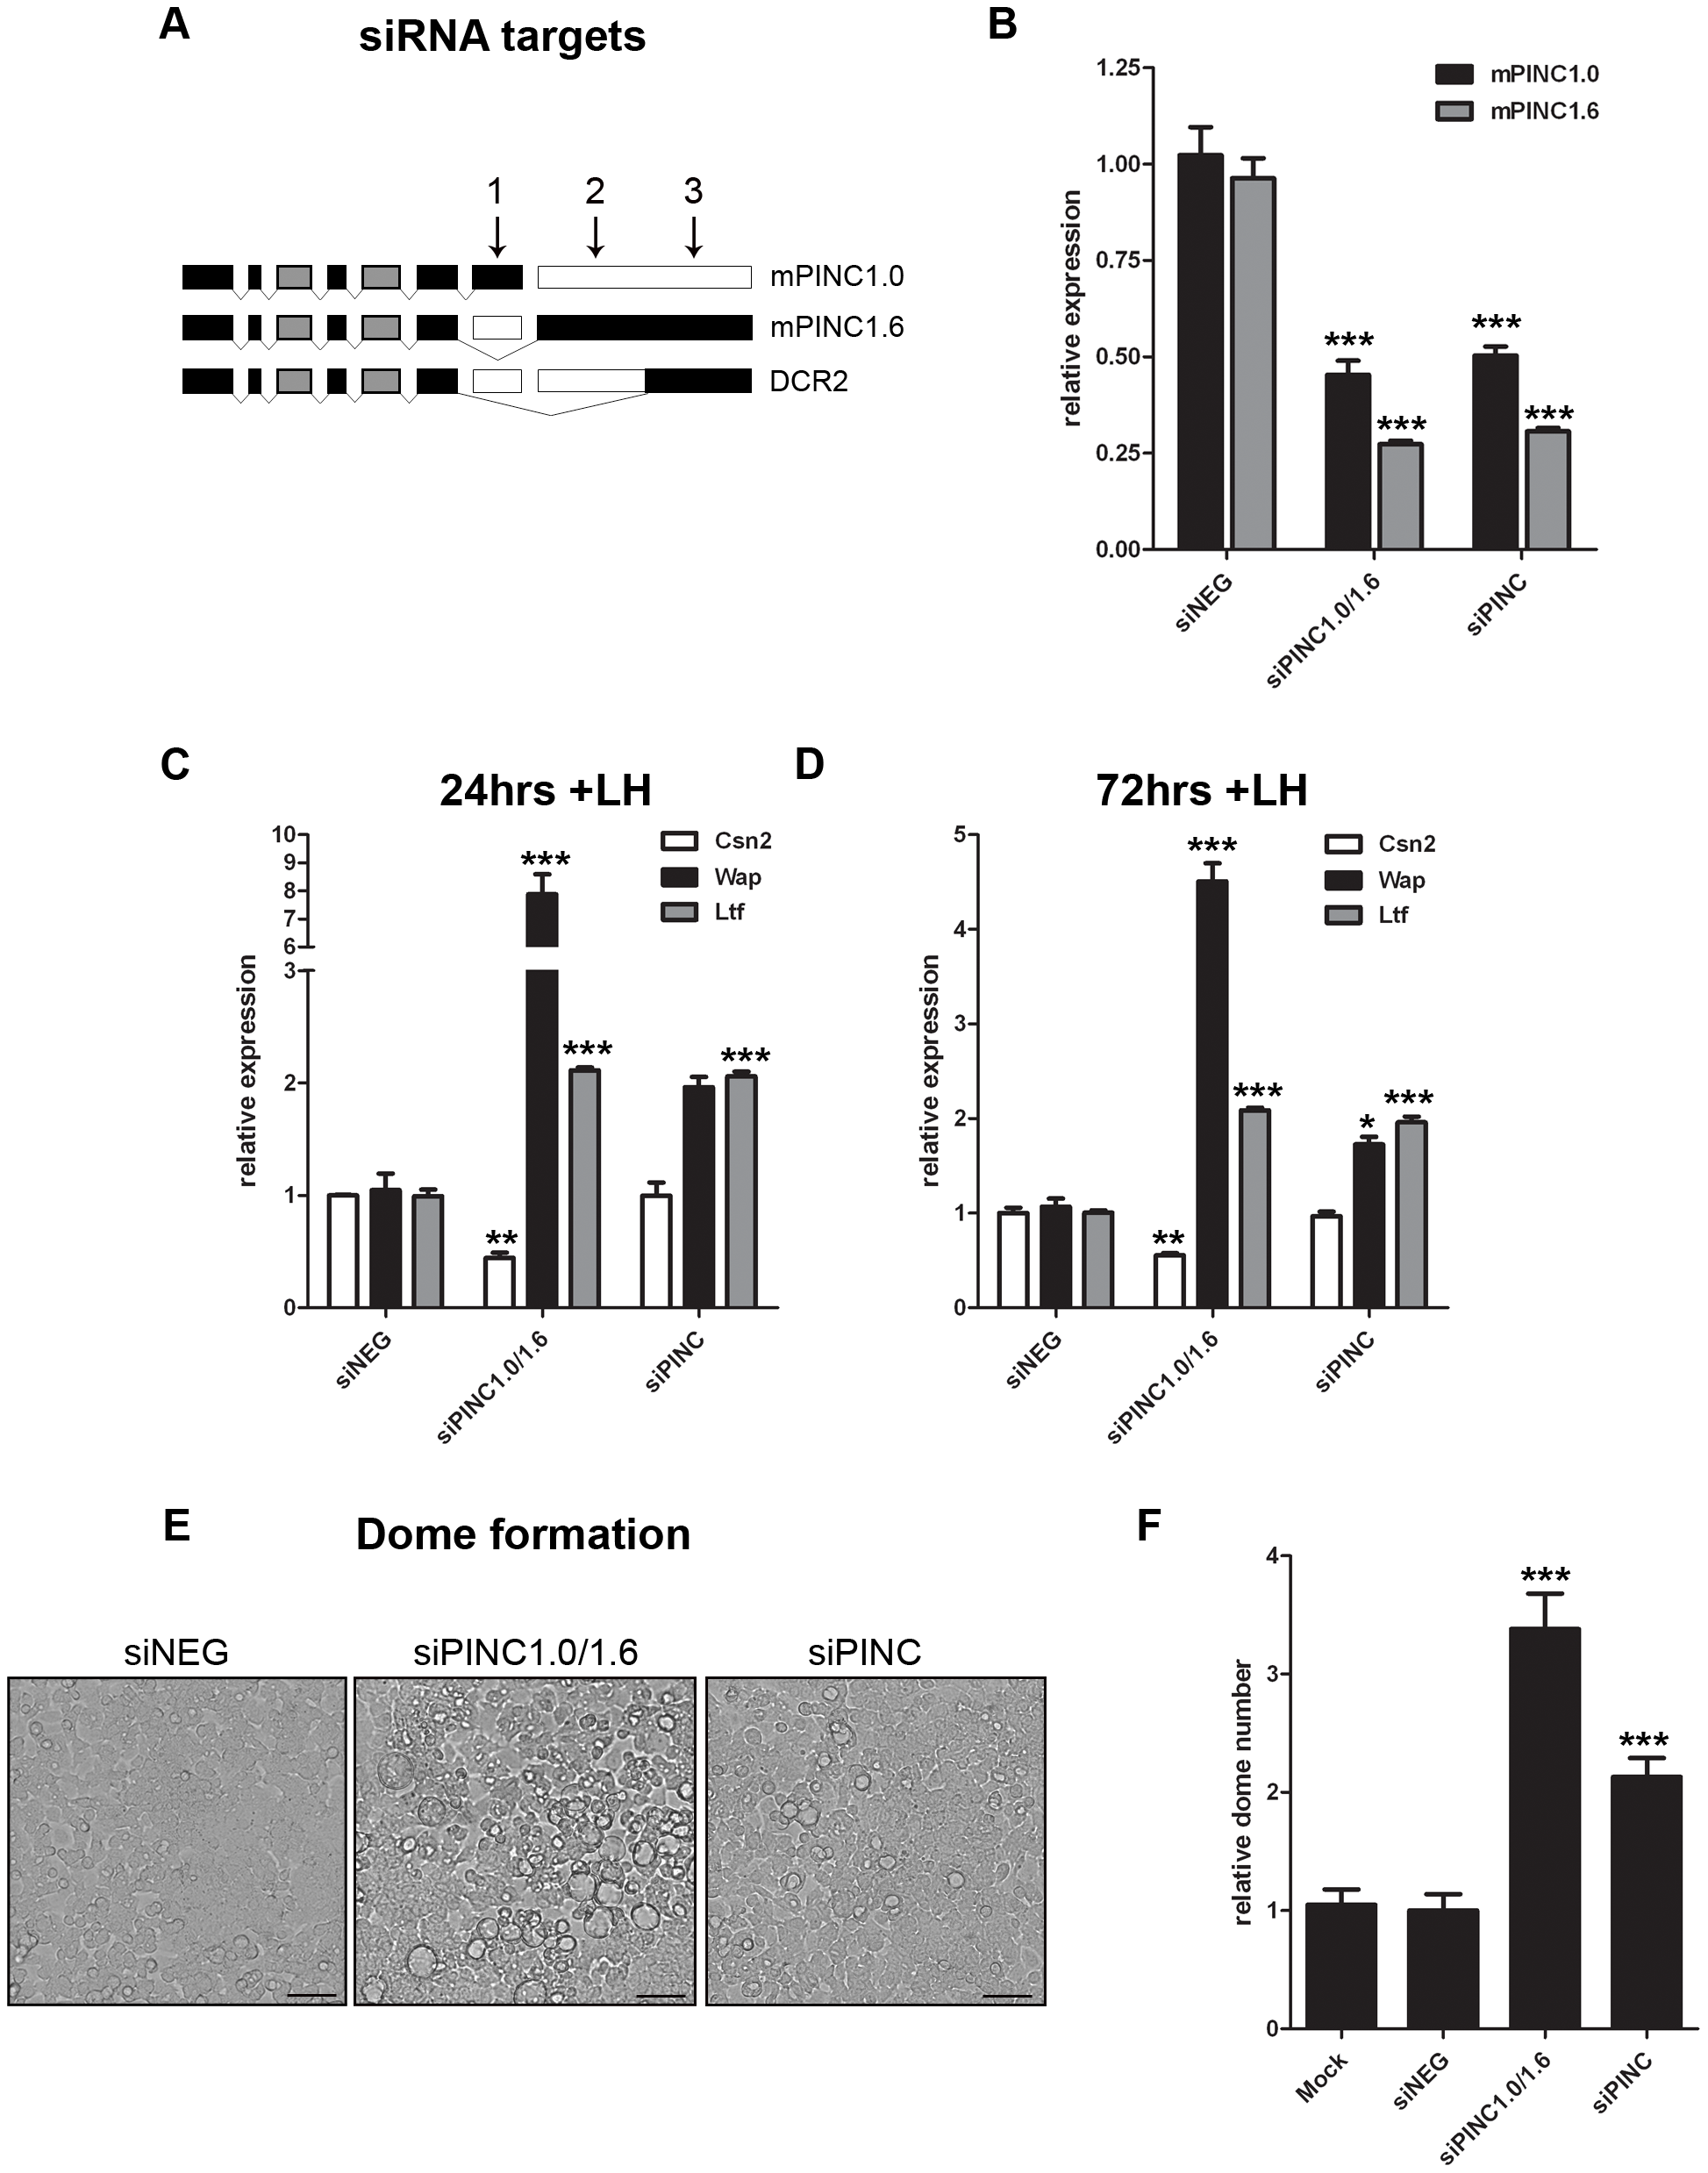 Knockdown of <i>mPINC</i> enhances differentiation of HC11 cells.